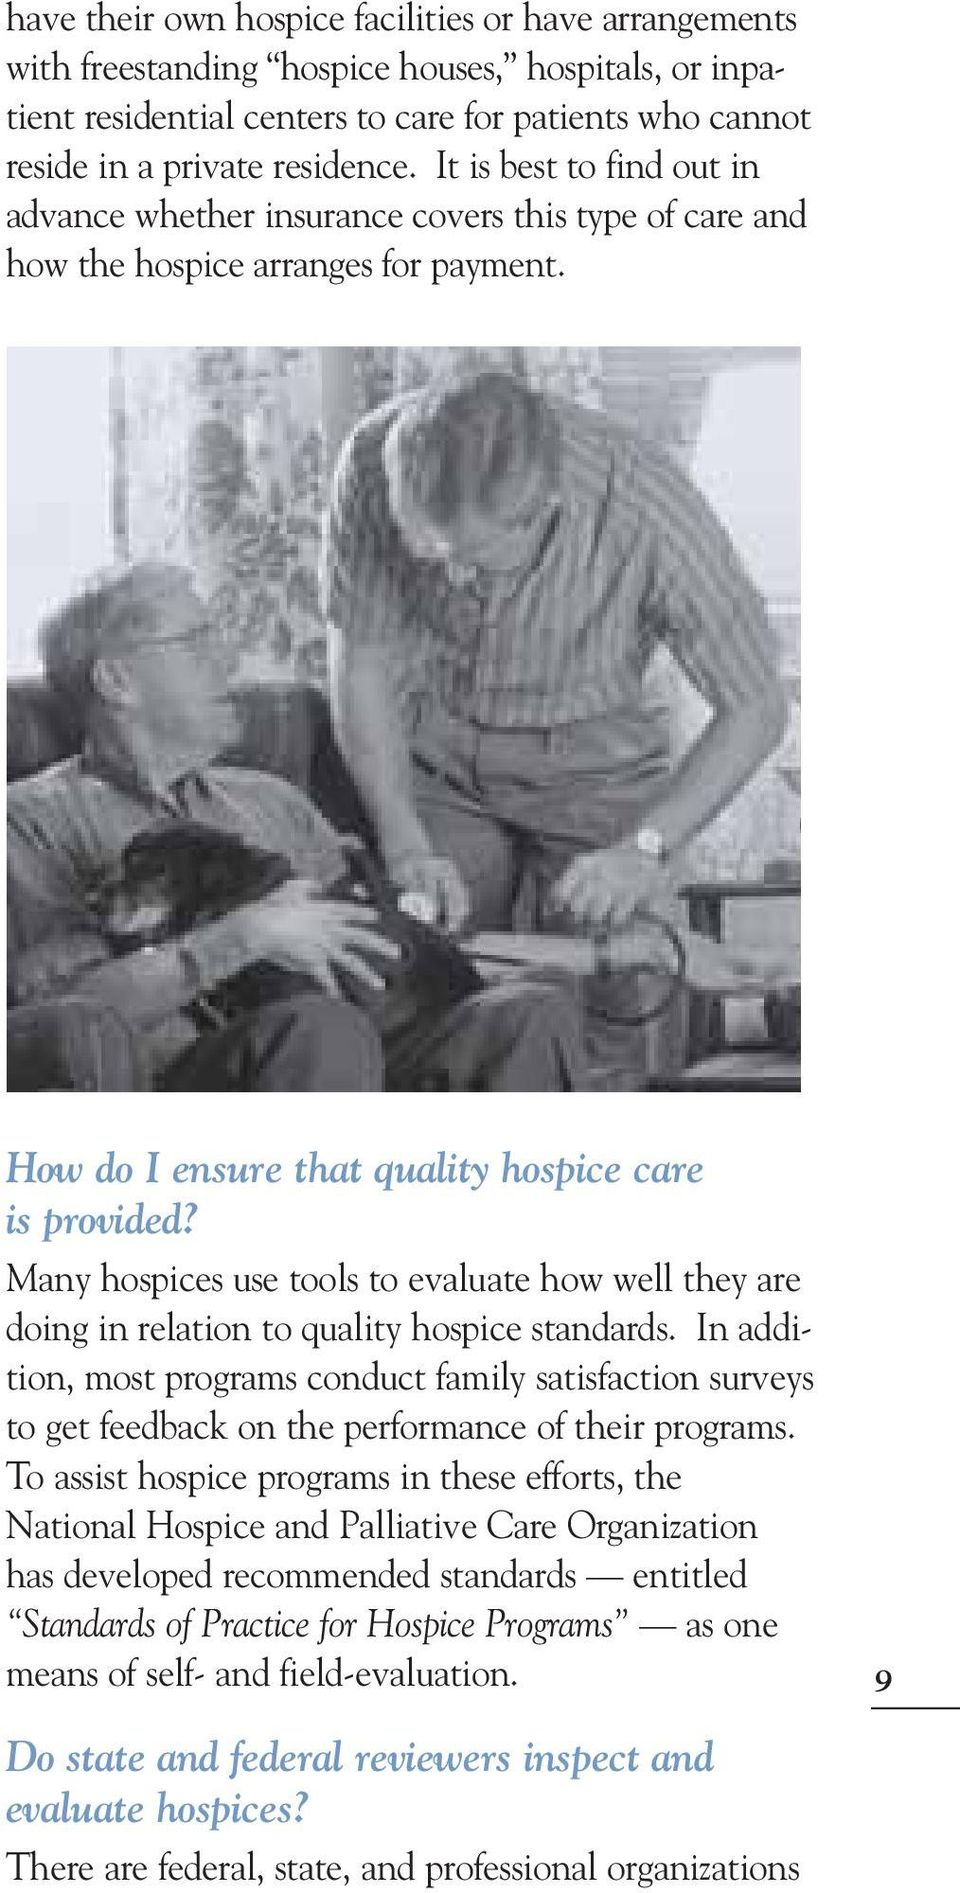 Many hospices use tools to evaluate how well they are doing in relation to quality hospice standards.